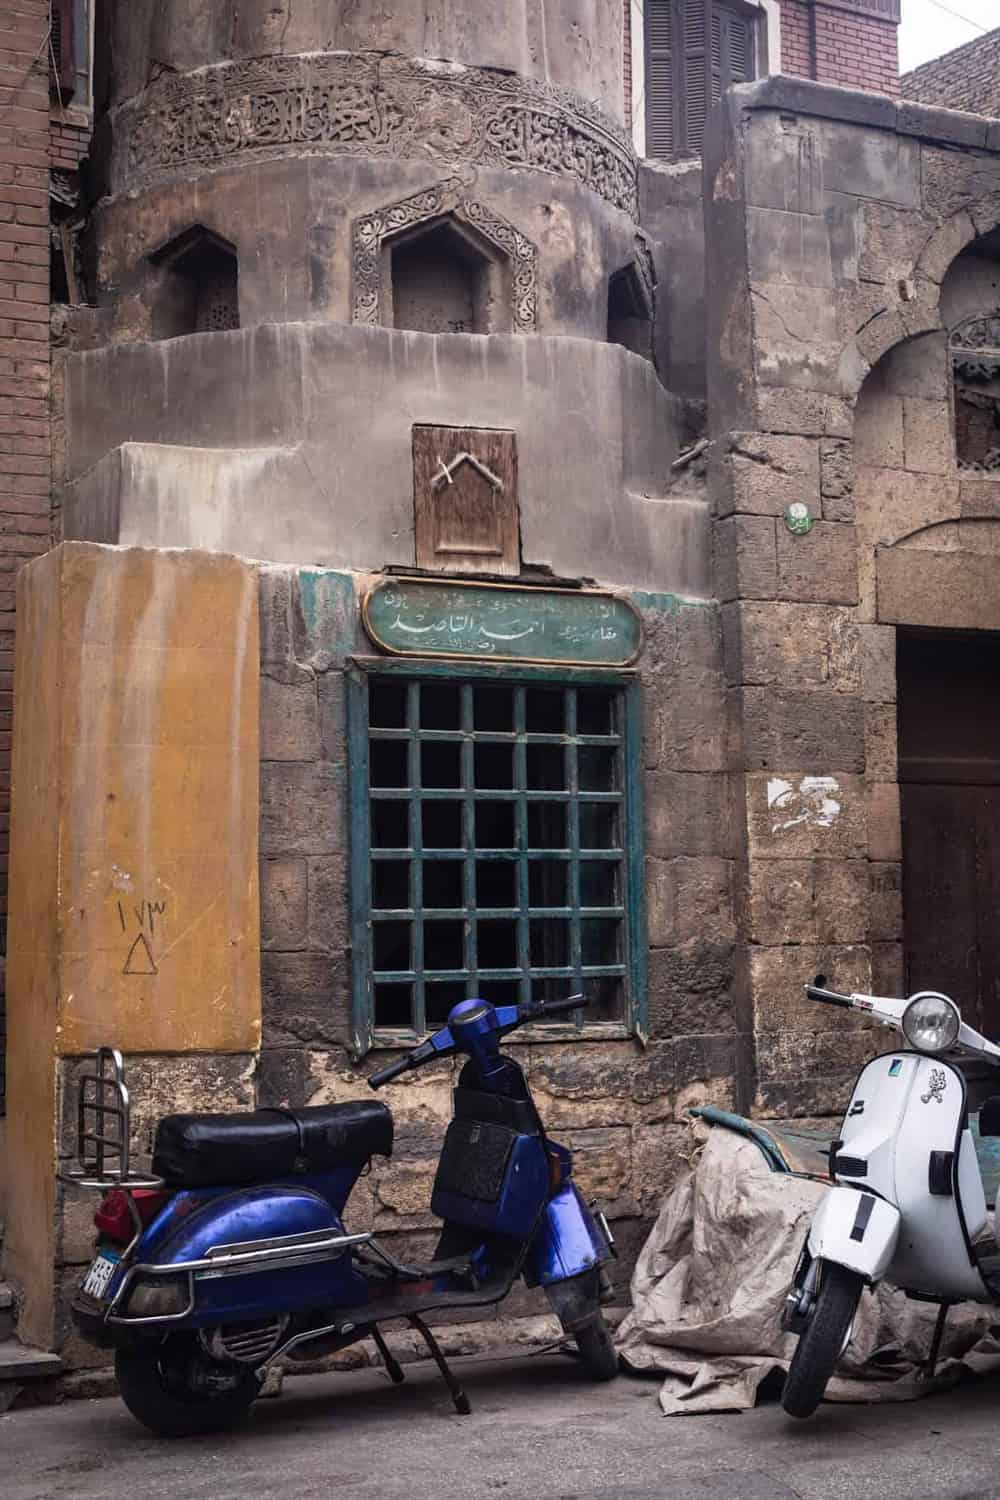 2 motorcycles parked outside an incredibly old building in Old Cairo.